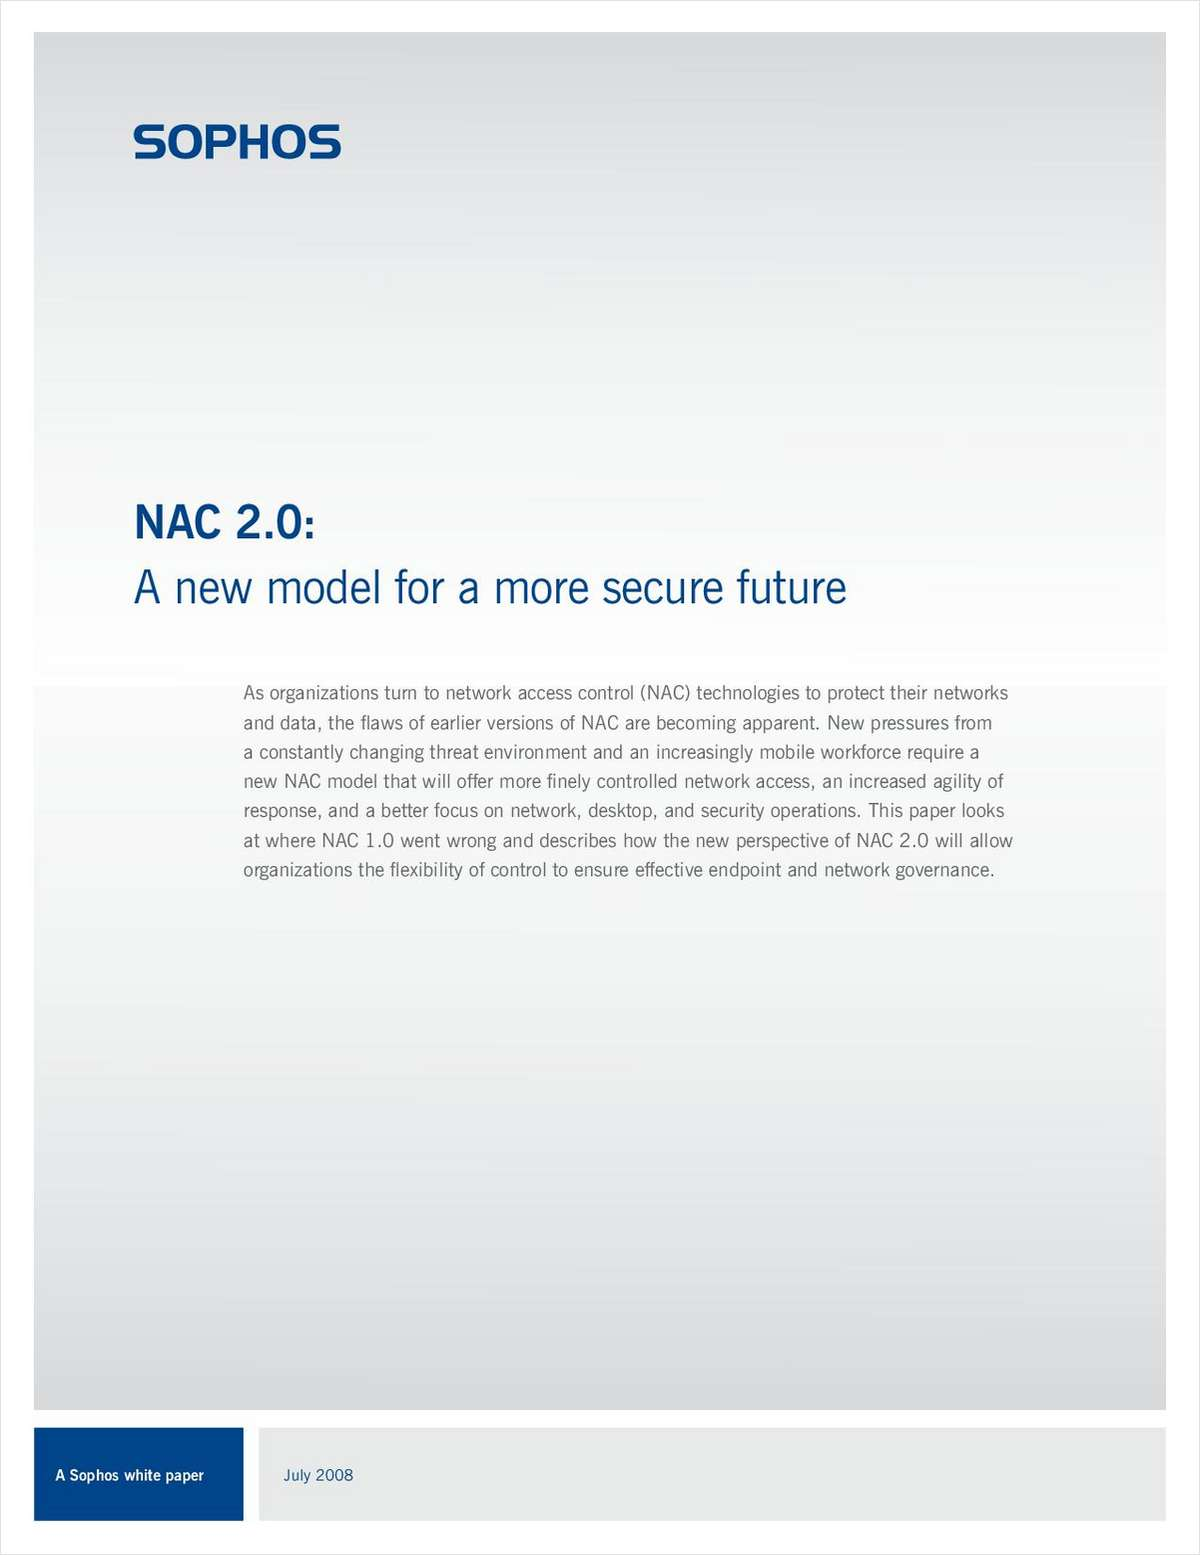 NAC 2.0: A New Model for a More Secure Future